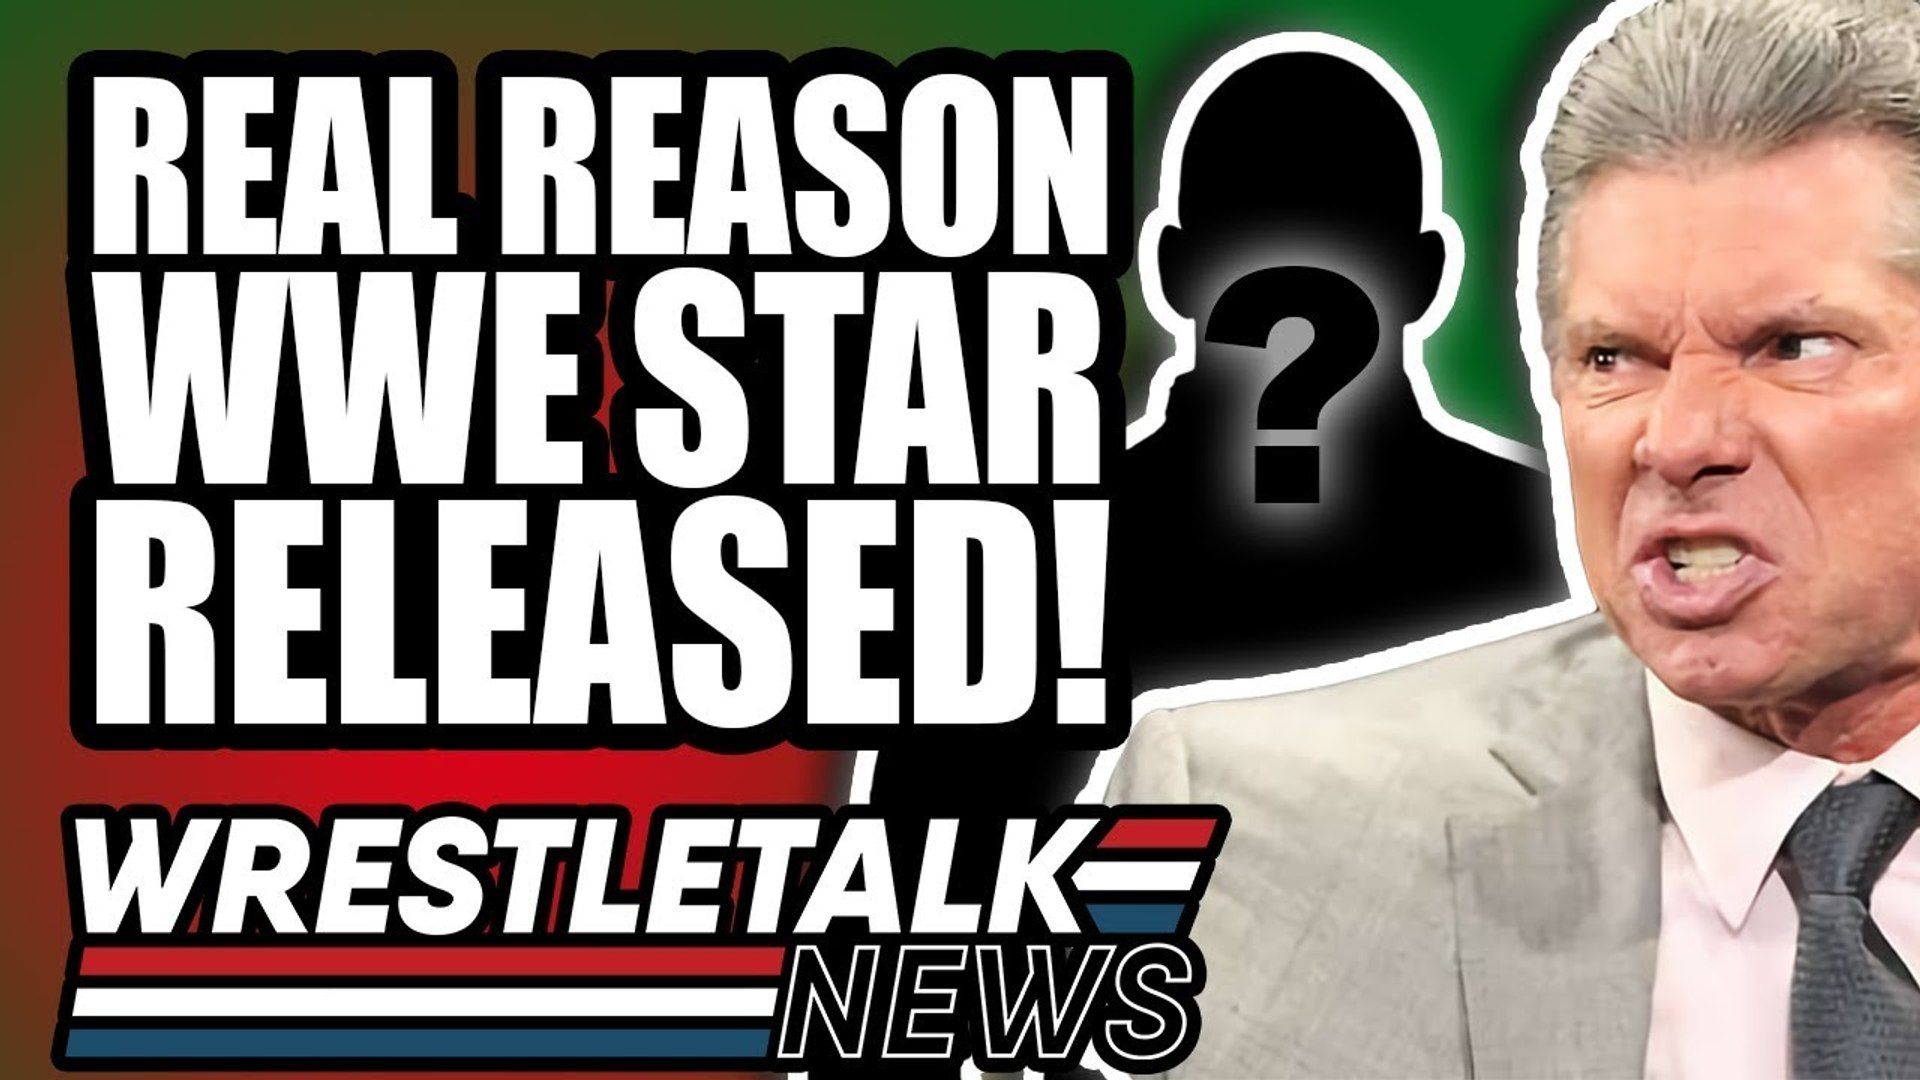 WWE Money In The Bank Plans LEAKED?! REAL REASON WWE Star RELEASED! | WrestleTalk News Apr. 2019